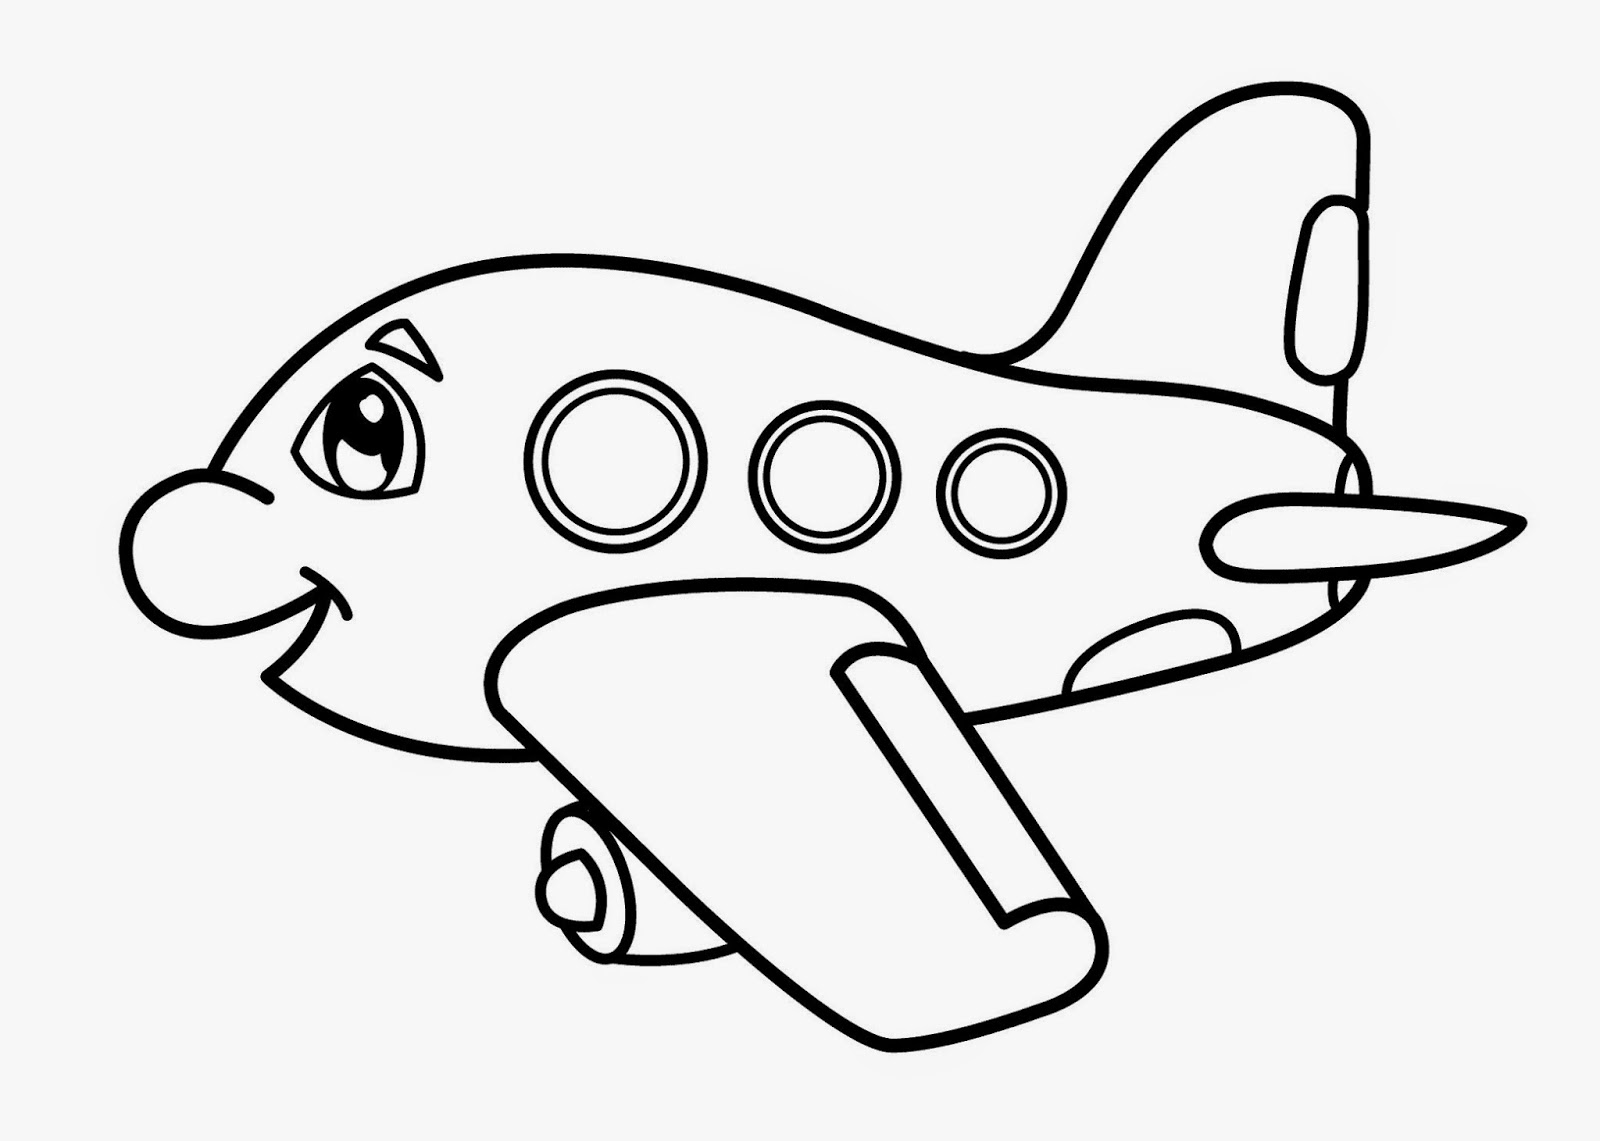 7 Best Images Of Airplane Letter A Worksheets